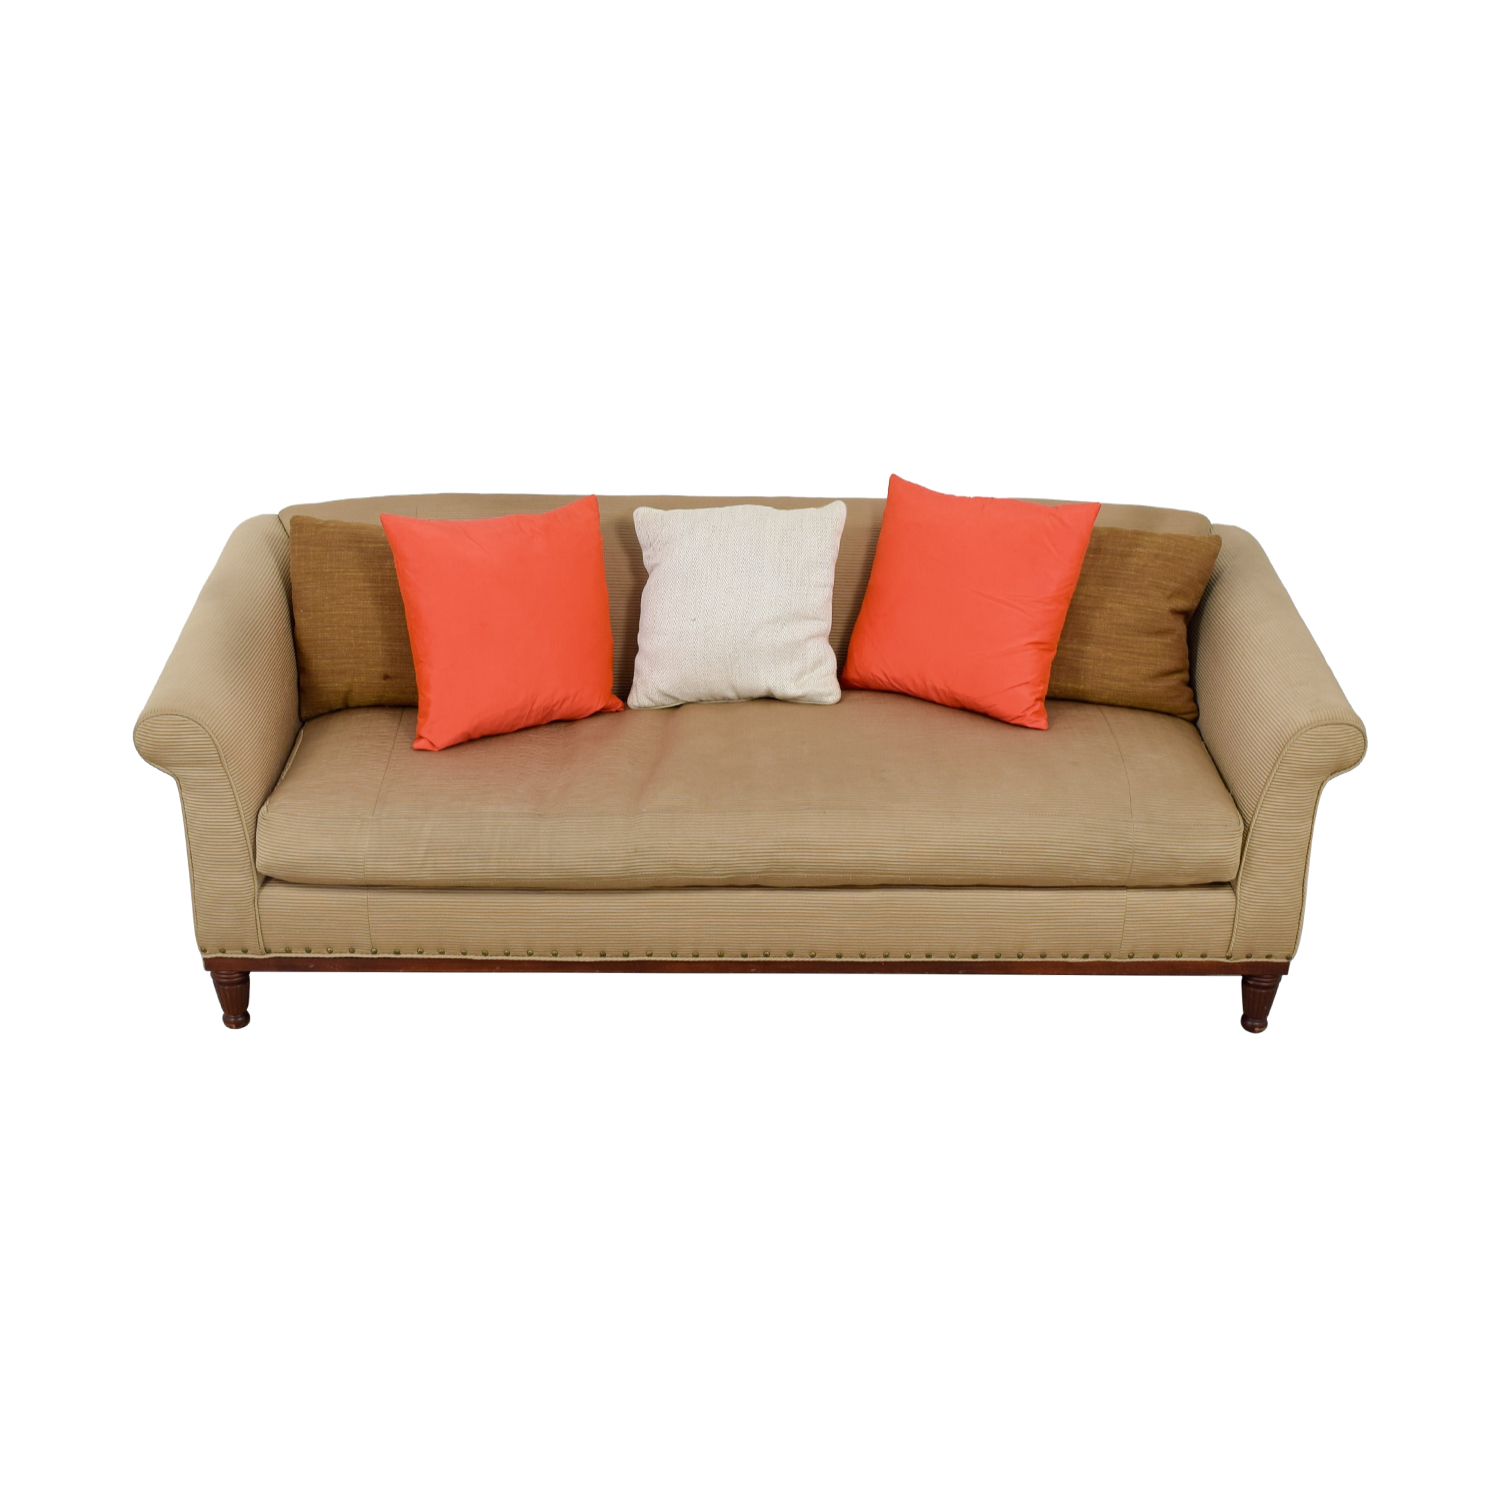 Ralph Lauren Tan Chinoisserie Nailhead Sofa sale